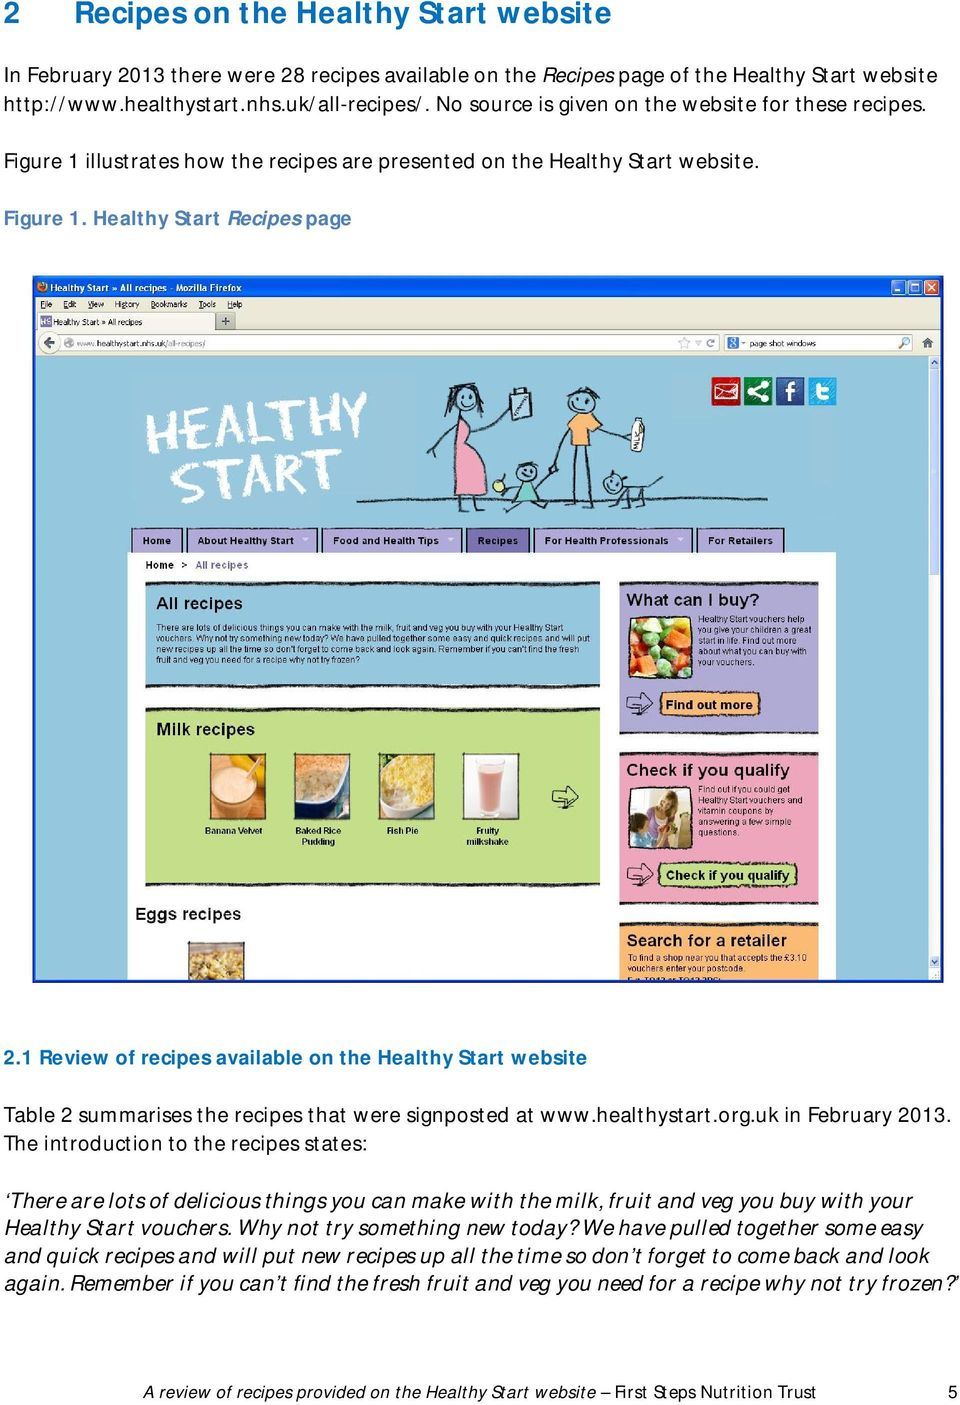 1 Review of recipes available on the Healthy Start website Table 2 summarises the recipes that were signposted at www.healthystart.org.uk in February 2013.